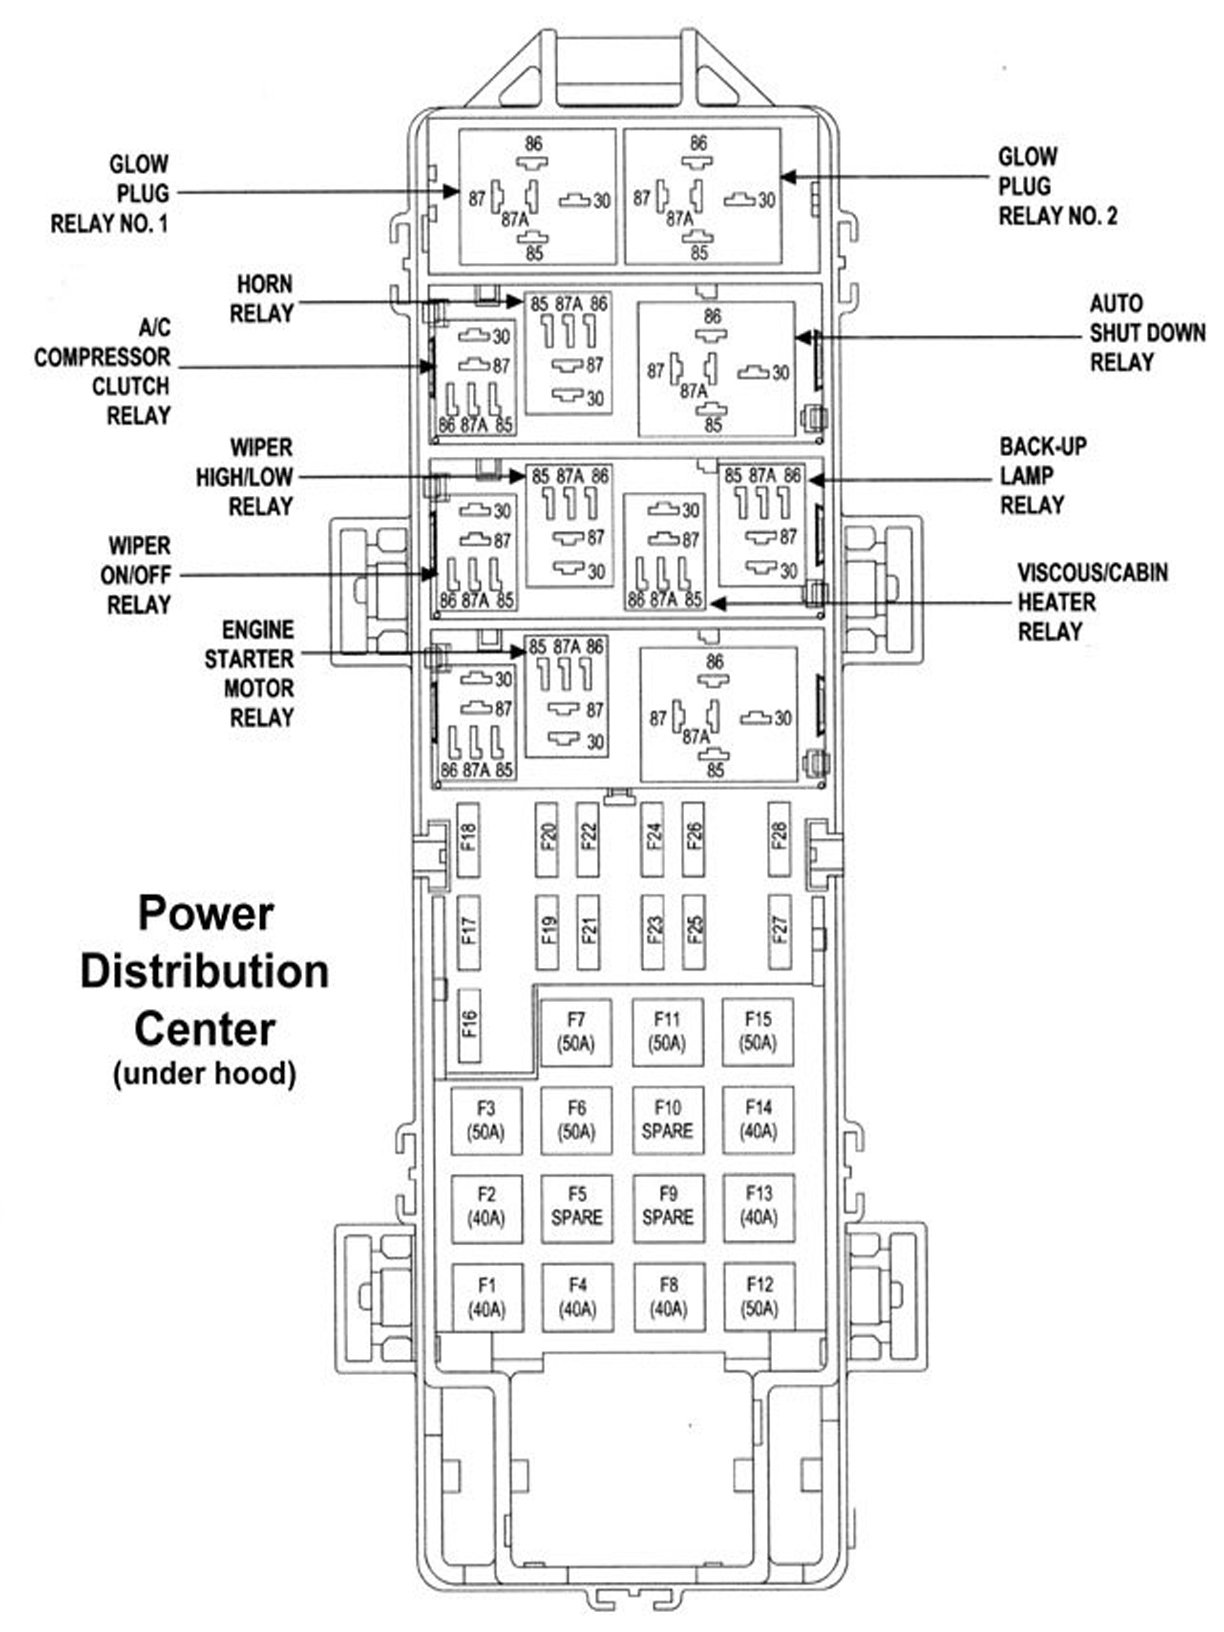 Jeep Grand Cherokee 1999 2004 Fuse Box Diagram 397760 on 1999 jeep cherokee fuse box diagram